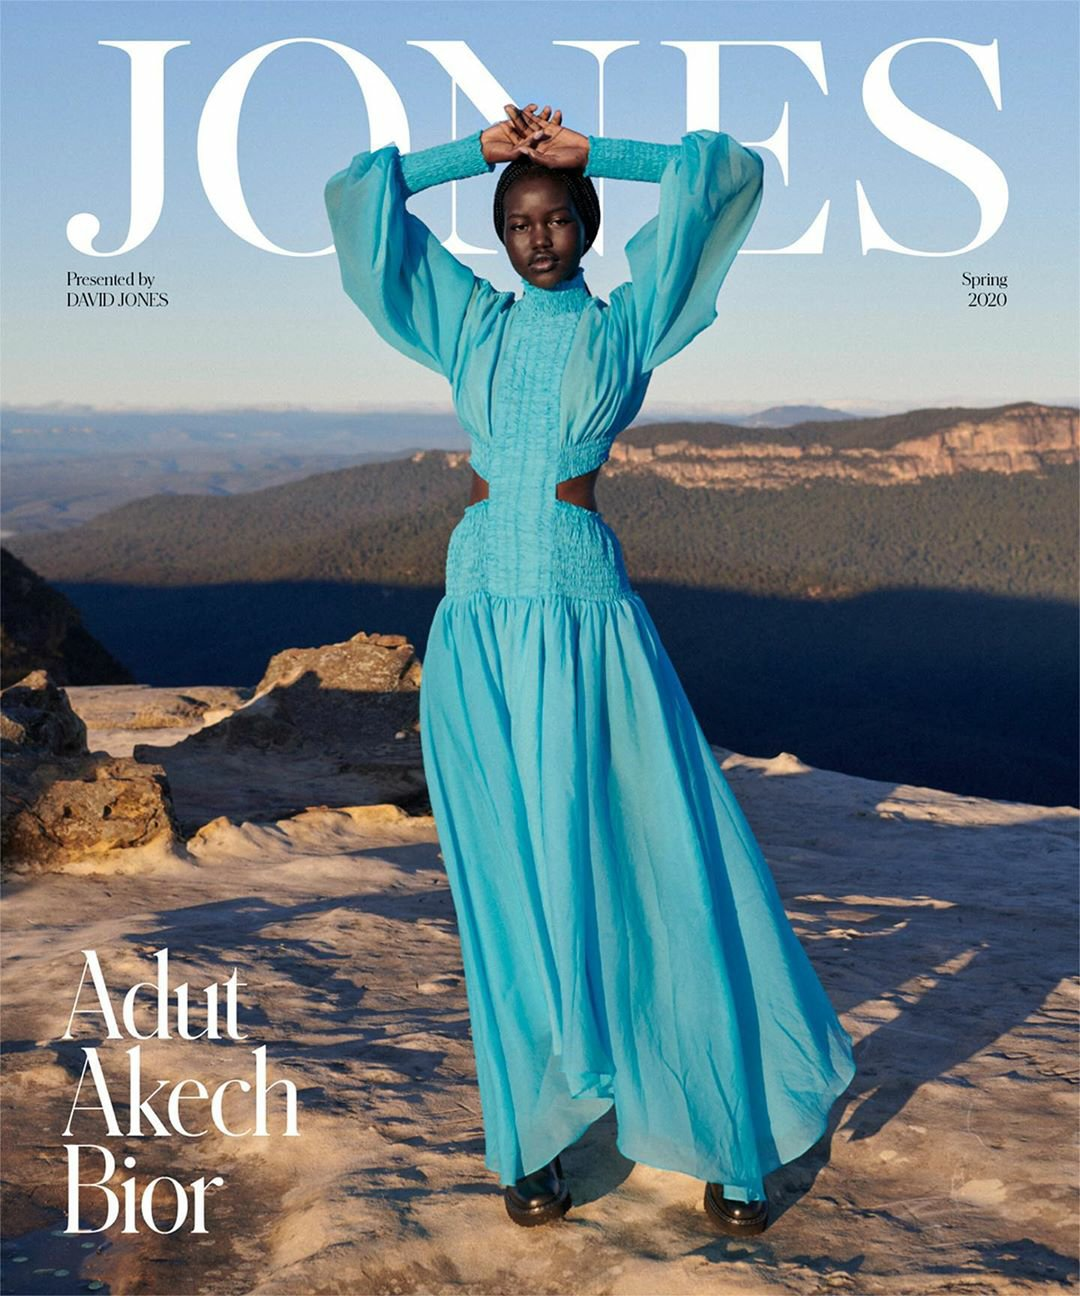 2adut akech shines in david jones spring 2020 campaign proves she looks good in everything7263313737239905397